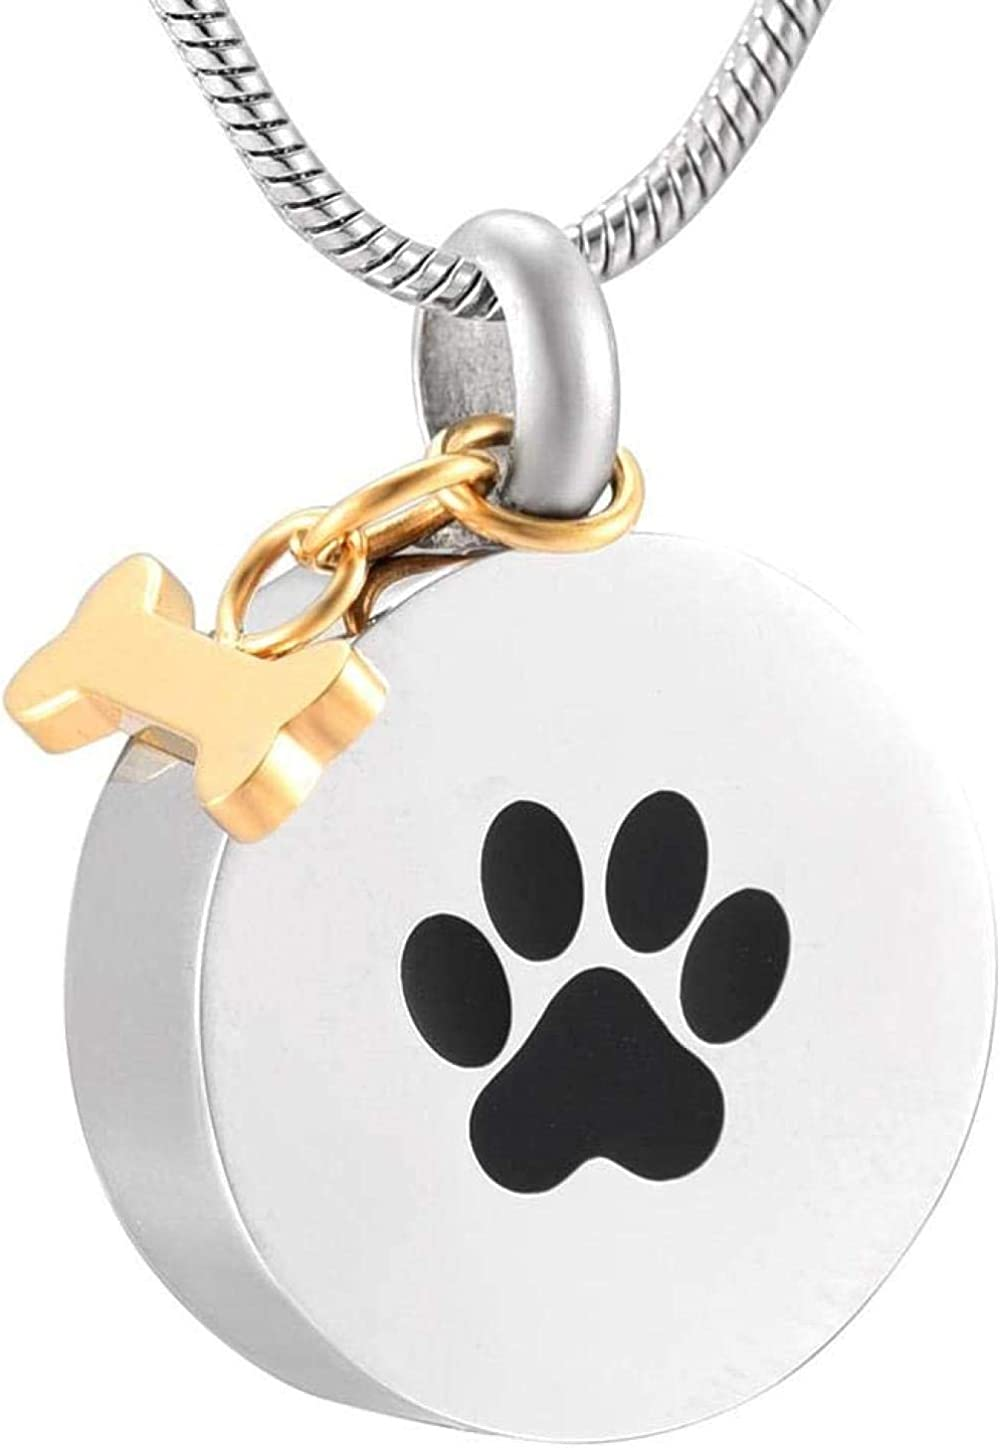 Cremation Jewelry Urn Urns Ashes Pendant Jewelry Pet Urn Necklace with Gold Bone Charm for Dog Ash Holder Keepsake Stainless Steel Cremation Jewelry Memorial